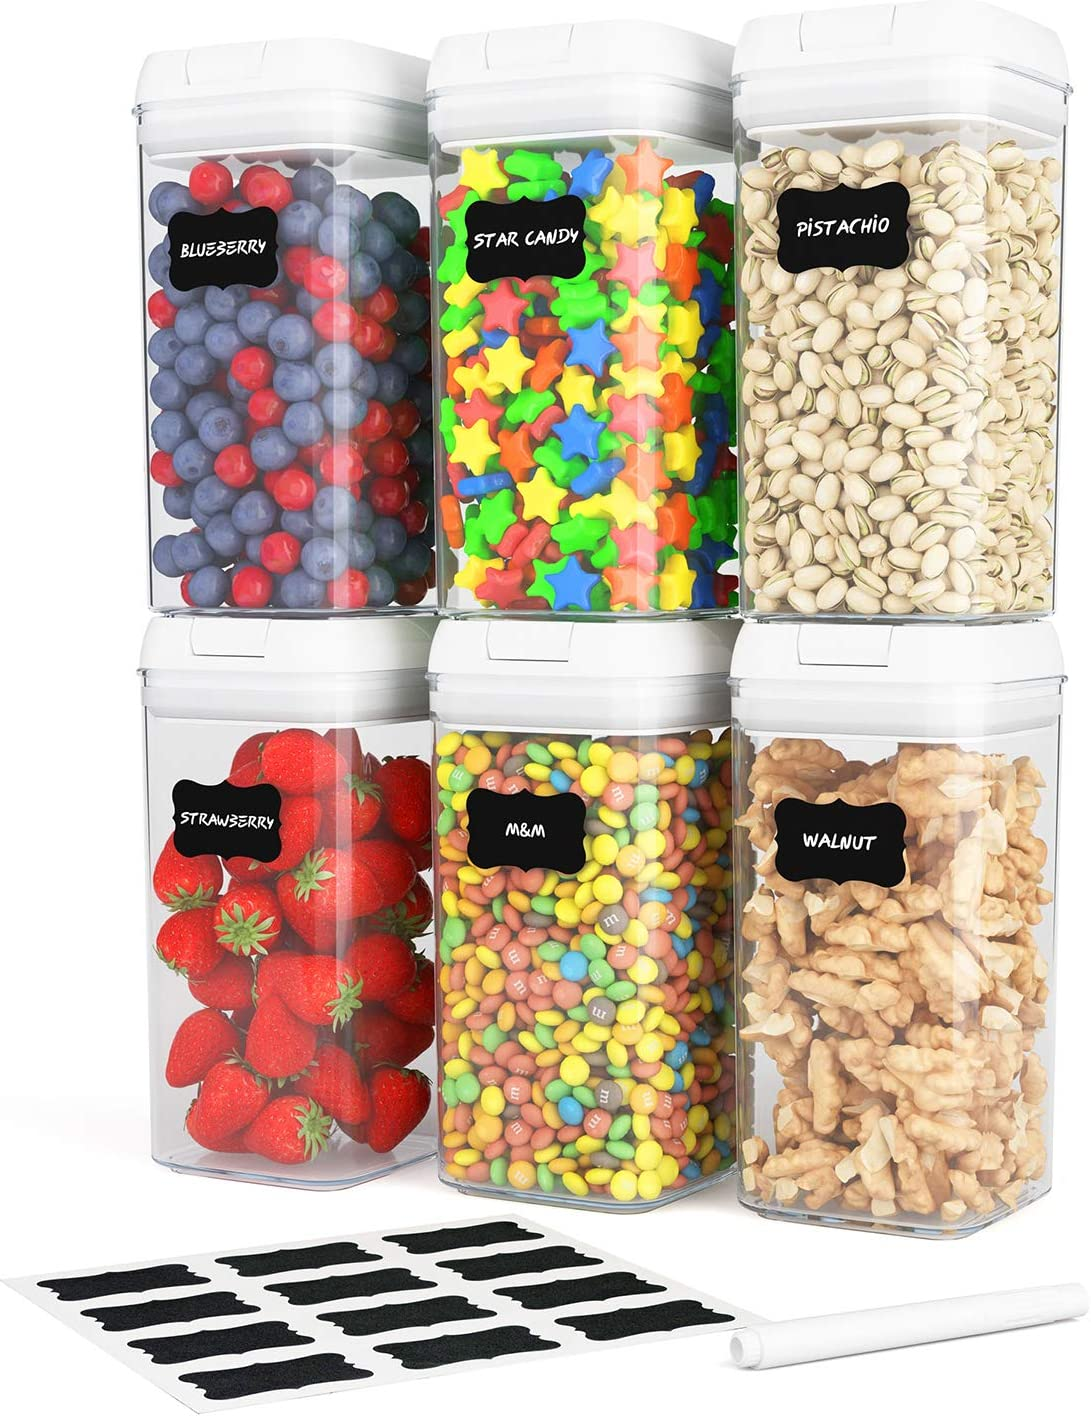 6 Pack Airtight Food Storage Container Set, Kitchen and Pantry Containers, BPA Free Containers, Keep Food Fresh, Dry and Organized, All Same Size 1.2L Each, with Improved Lids, Labels